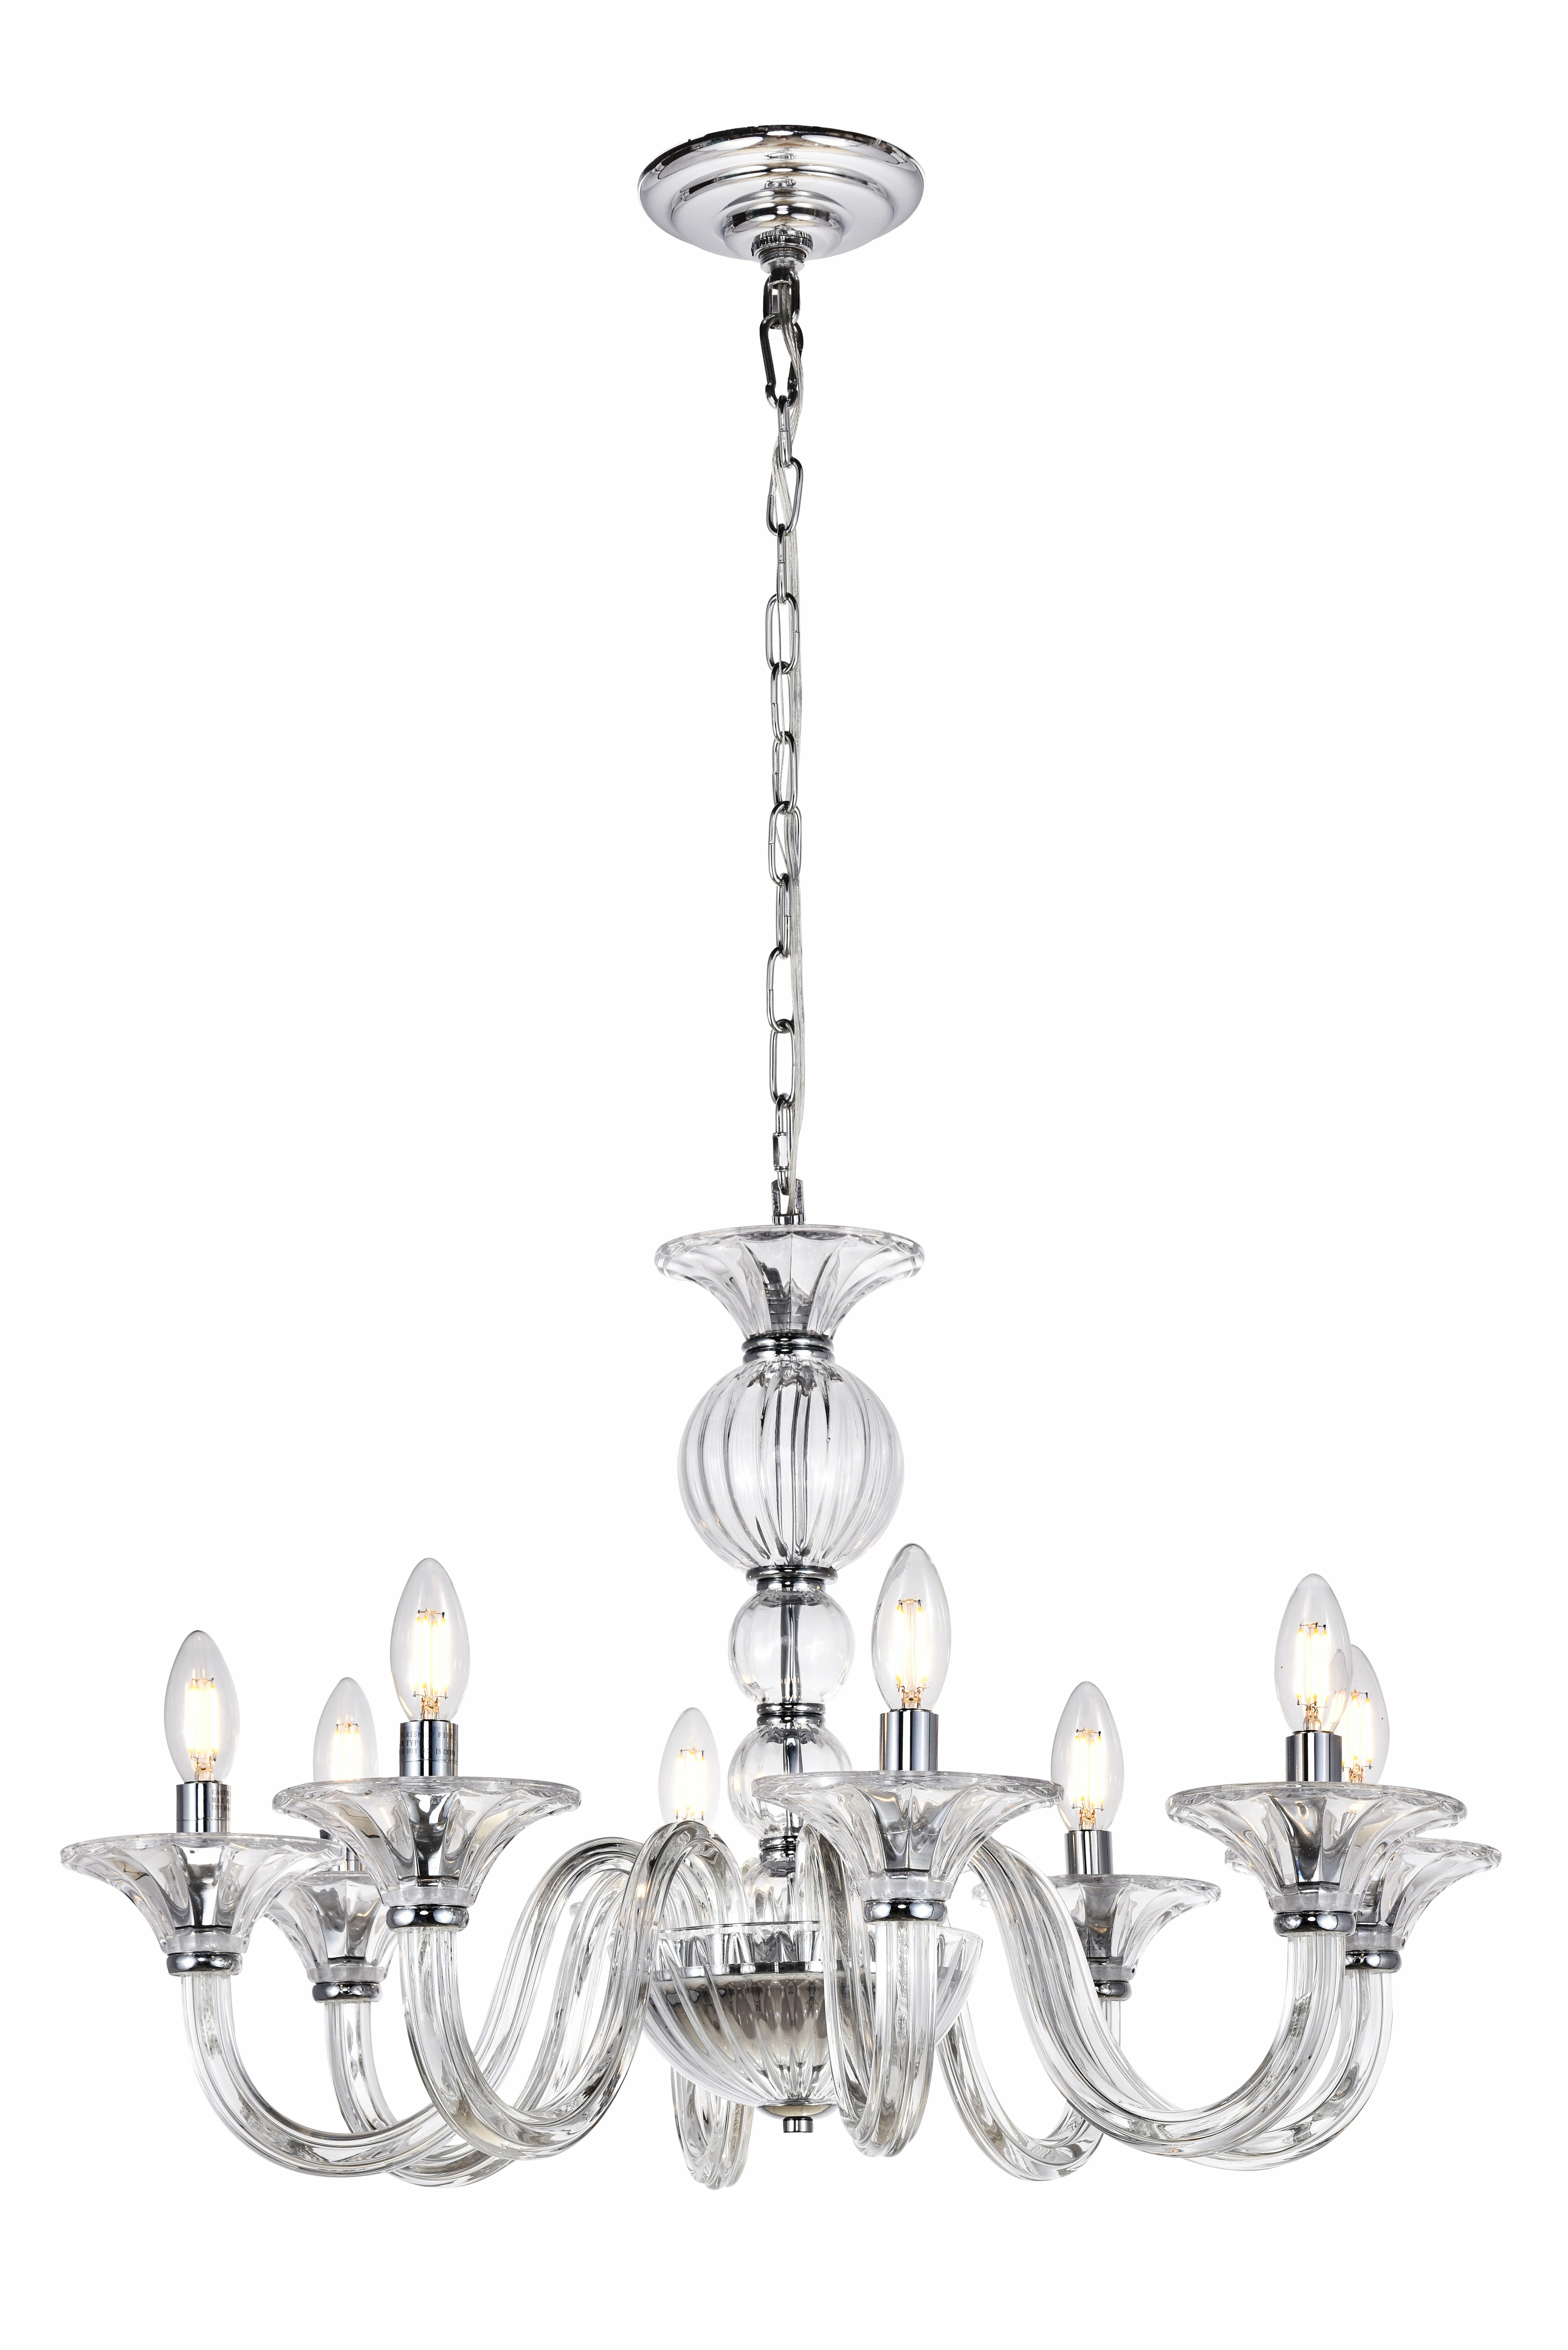 House Of Hampton Brompton 8 Light Candle Style Chandelier Reviews Wayfair Ca